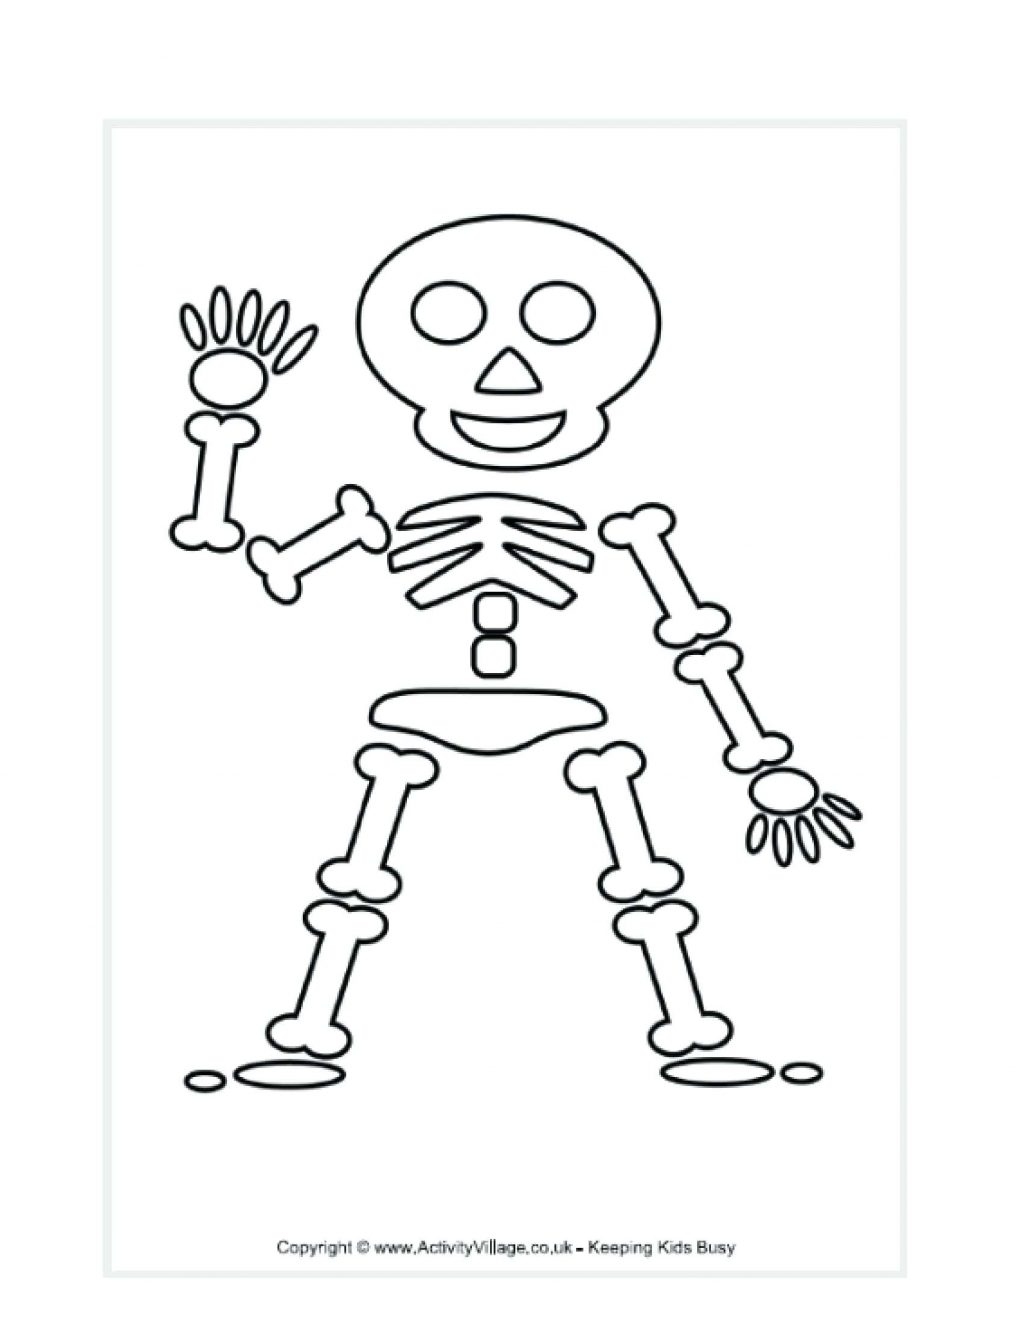 Body Parts Coloring Pages At Getcolorings